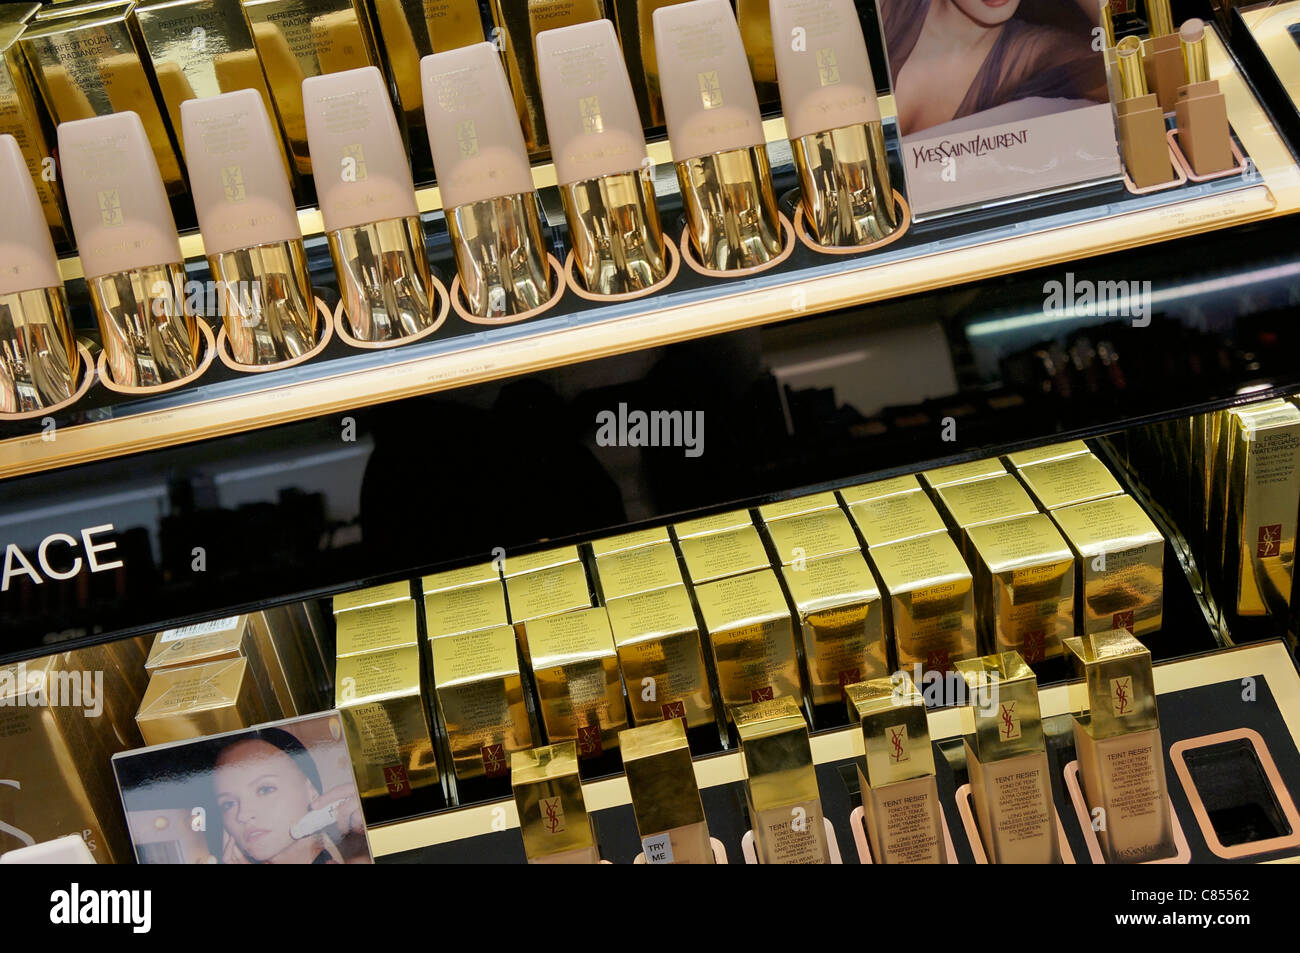 Cosmetics Display in a cosmetics shop - Stock Image